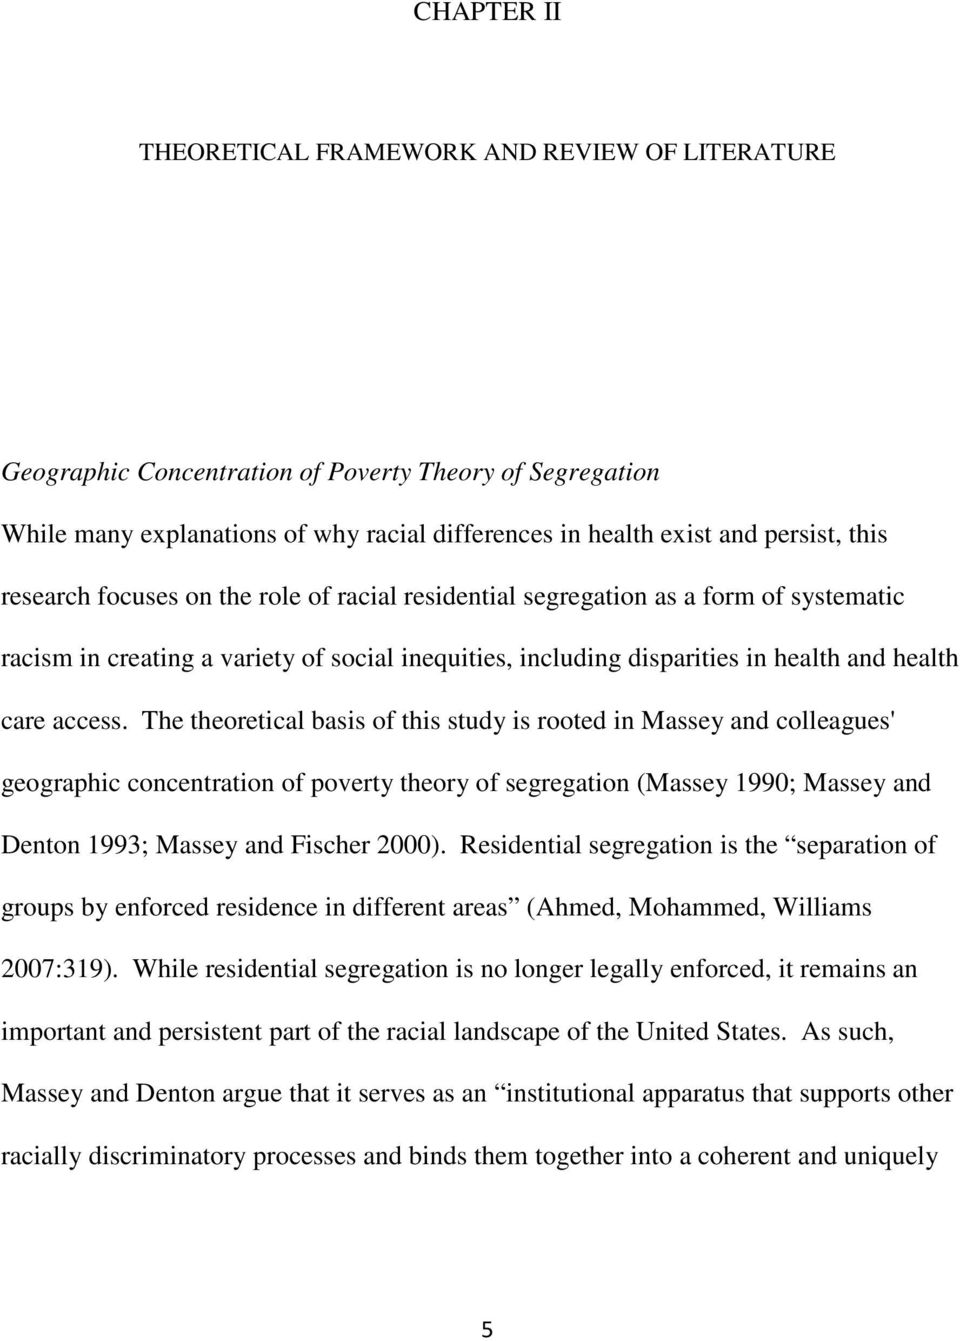 The theoretical basis of this study is rooted in Massey and colleagues' geographic concentration of poverty theory of segregation (Massey 1990; Massey and Denton 1993; Massey and Fischer 2000).